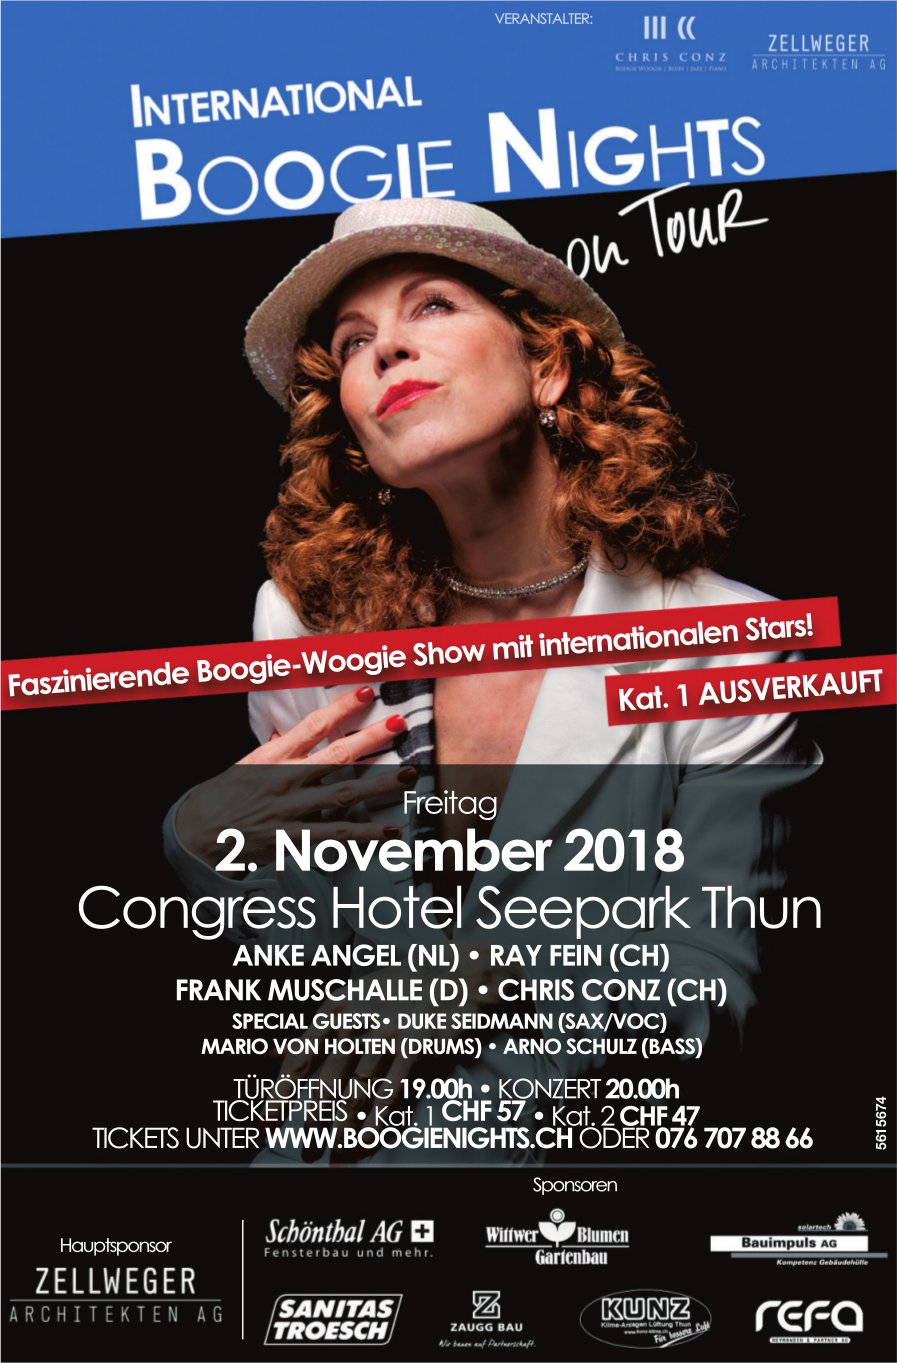 International Boogie Nights on Tour, am 2. November im Congress Hotel Seepark Thun